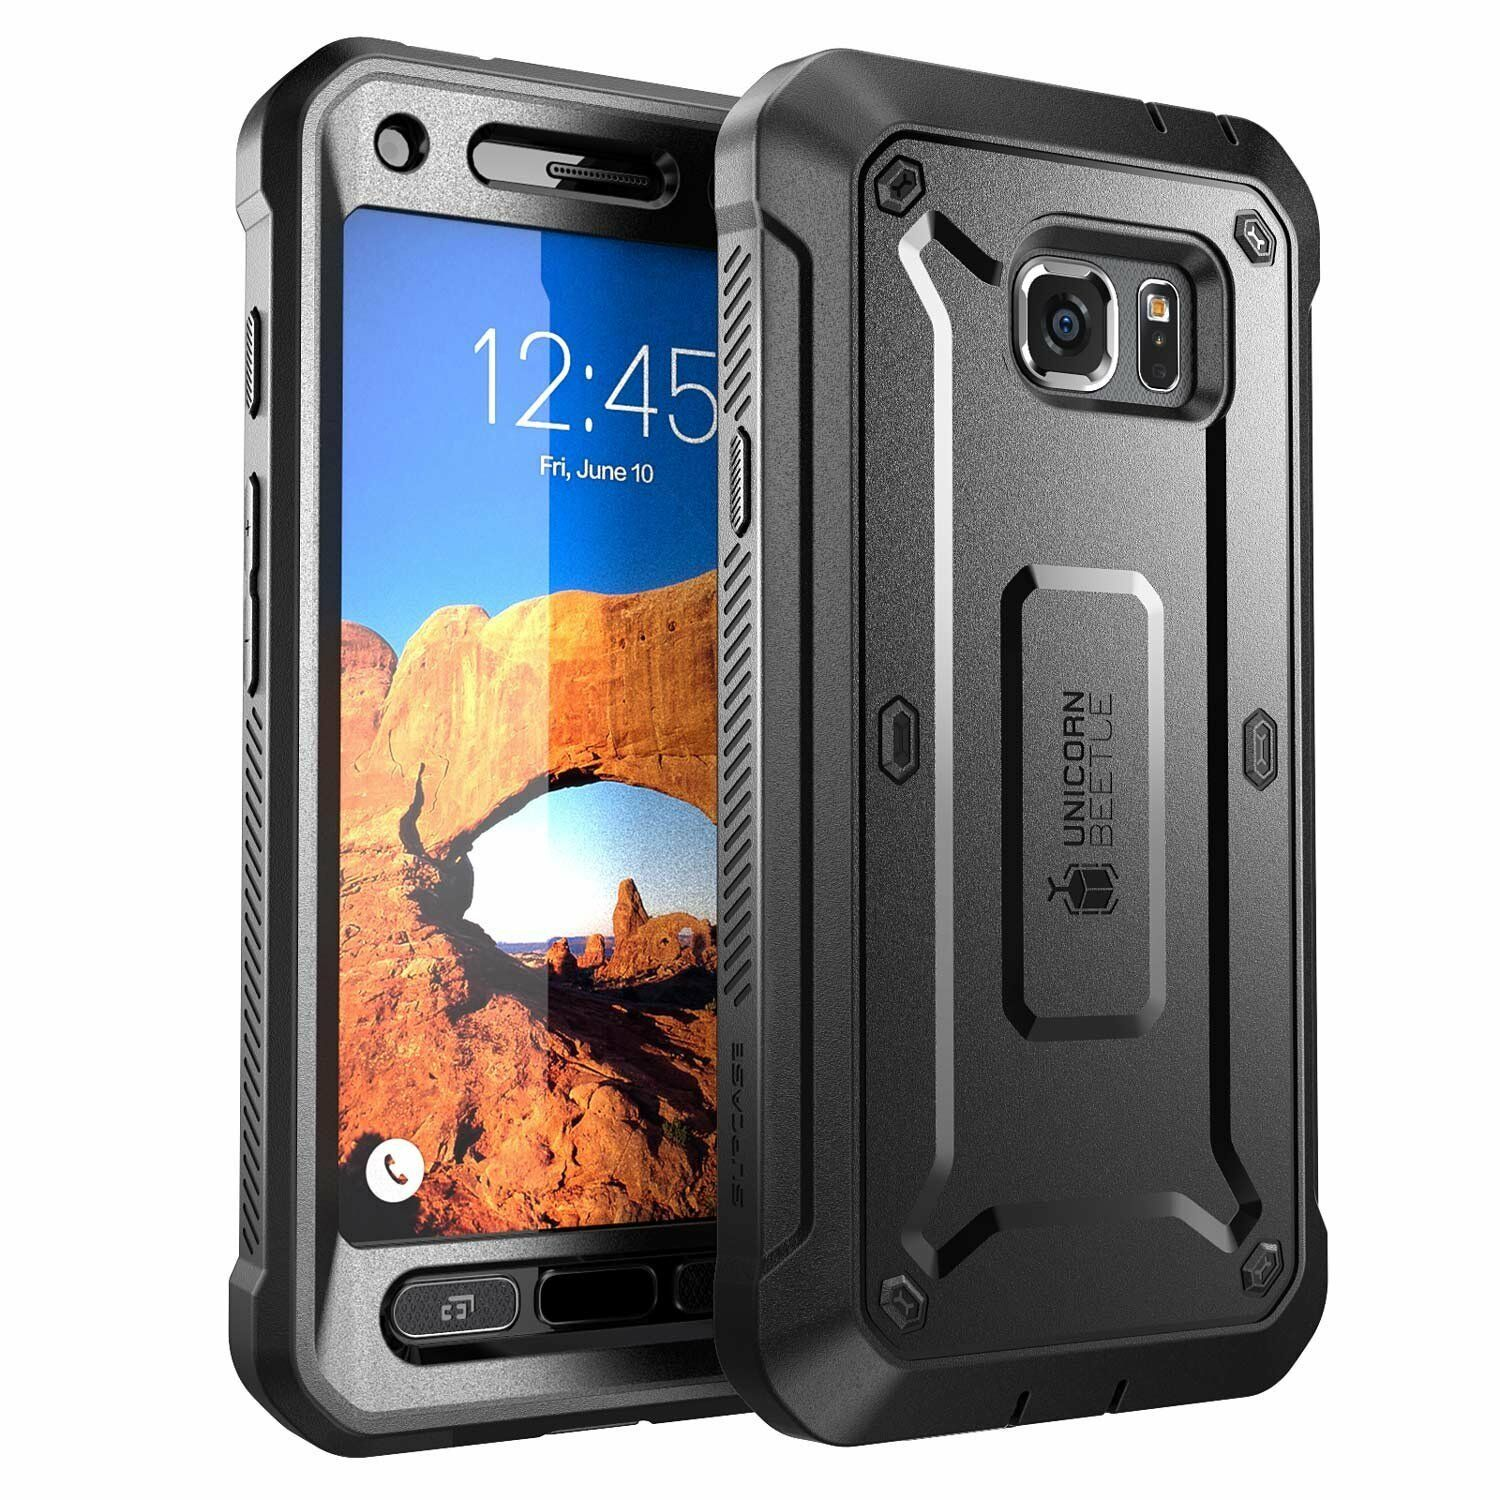 Samsung Galaxy S7 Active SUPCASE Unicorn Beetle Pro Rugged Holster Black  Case | EBay